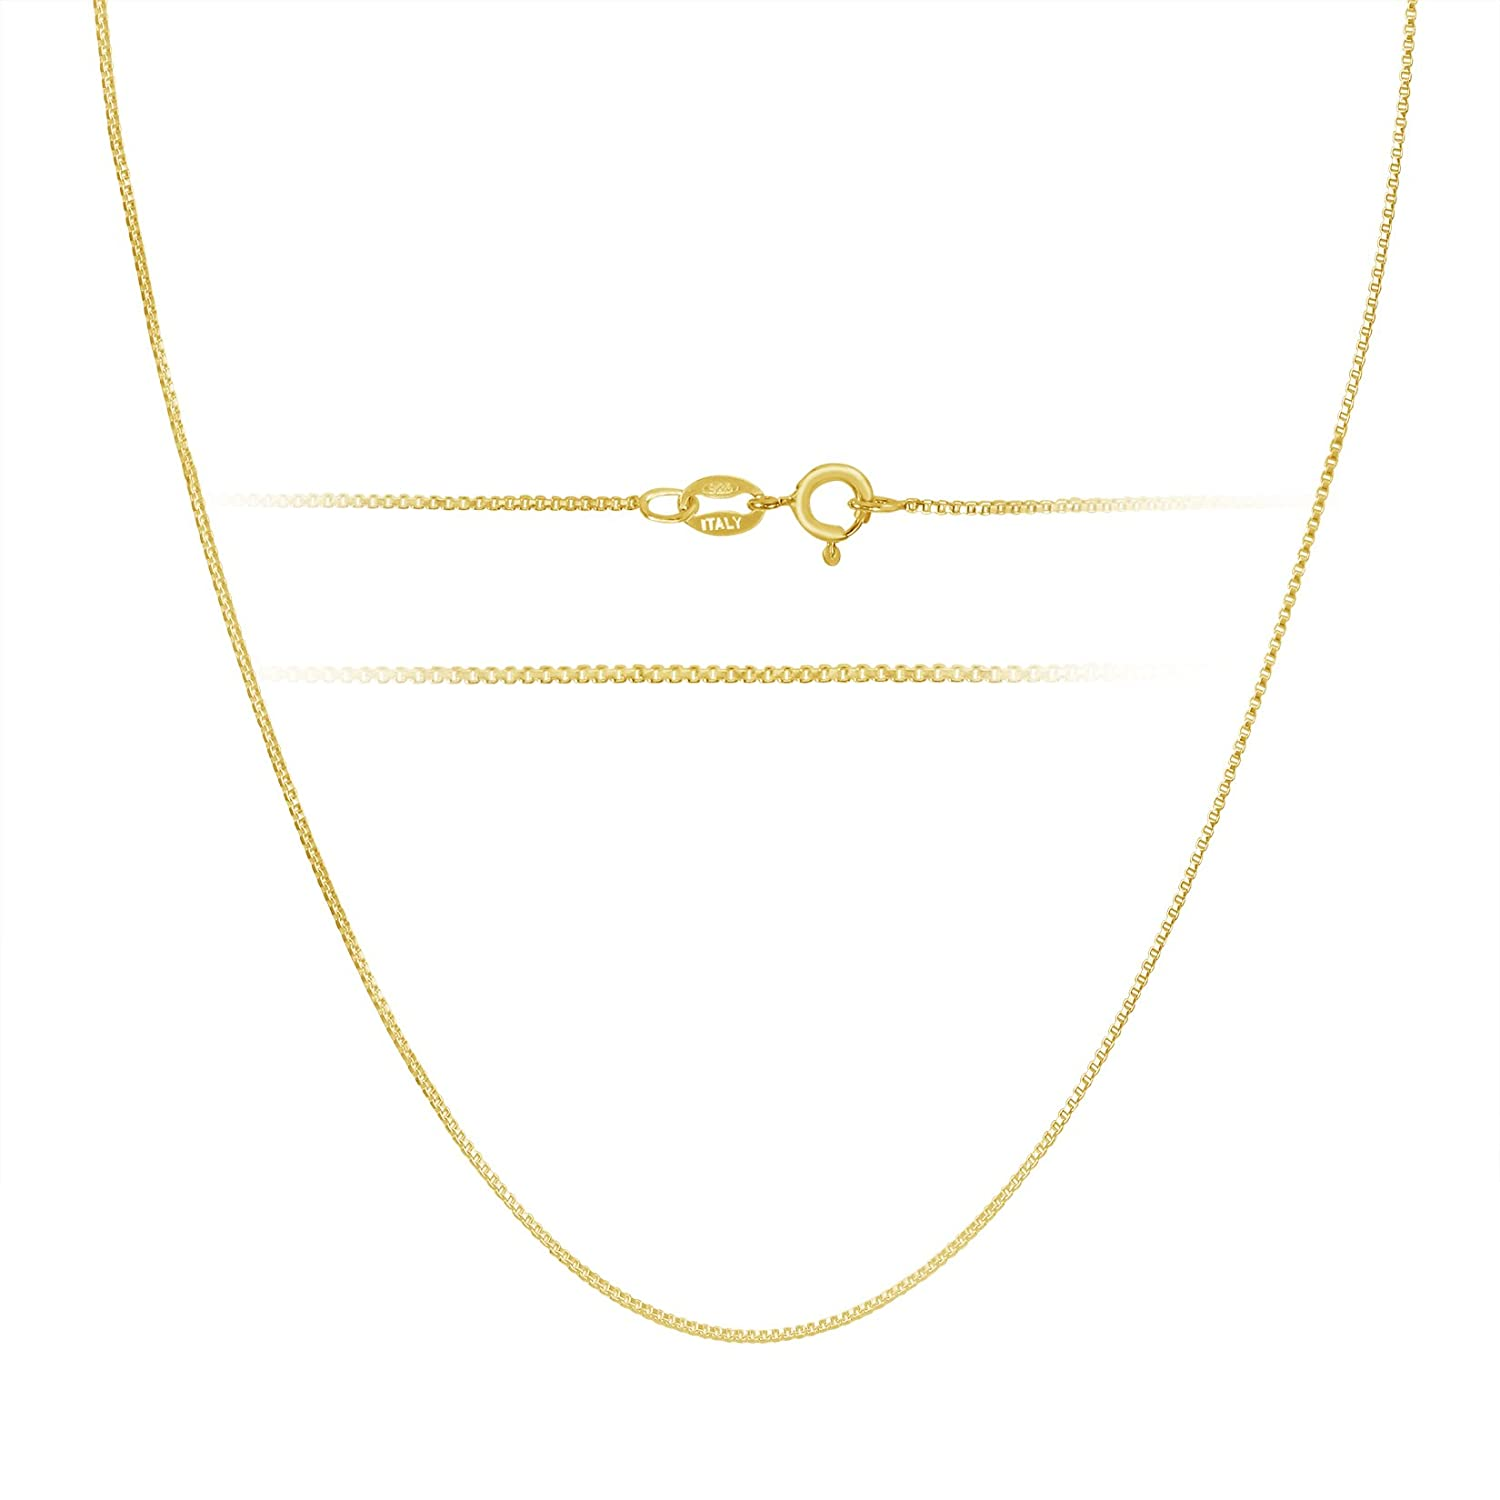 Kezef 18k Gold over Sterling Silver Very Thin .7mm Fine Box Chain Necklace Made in Italy Xirmo